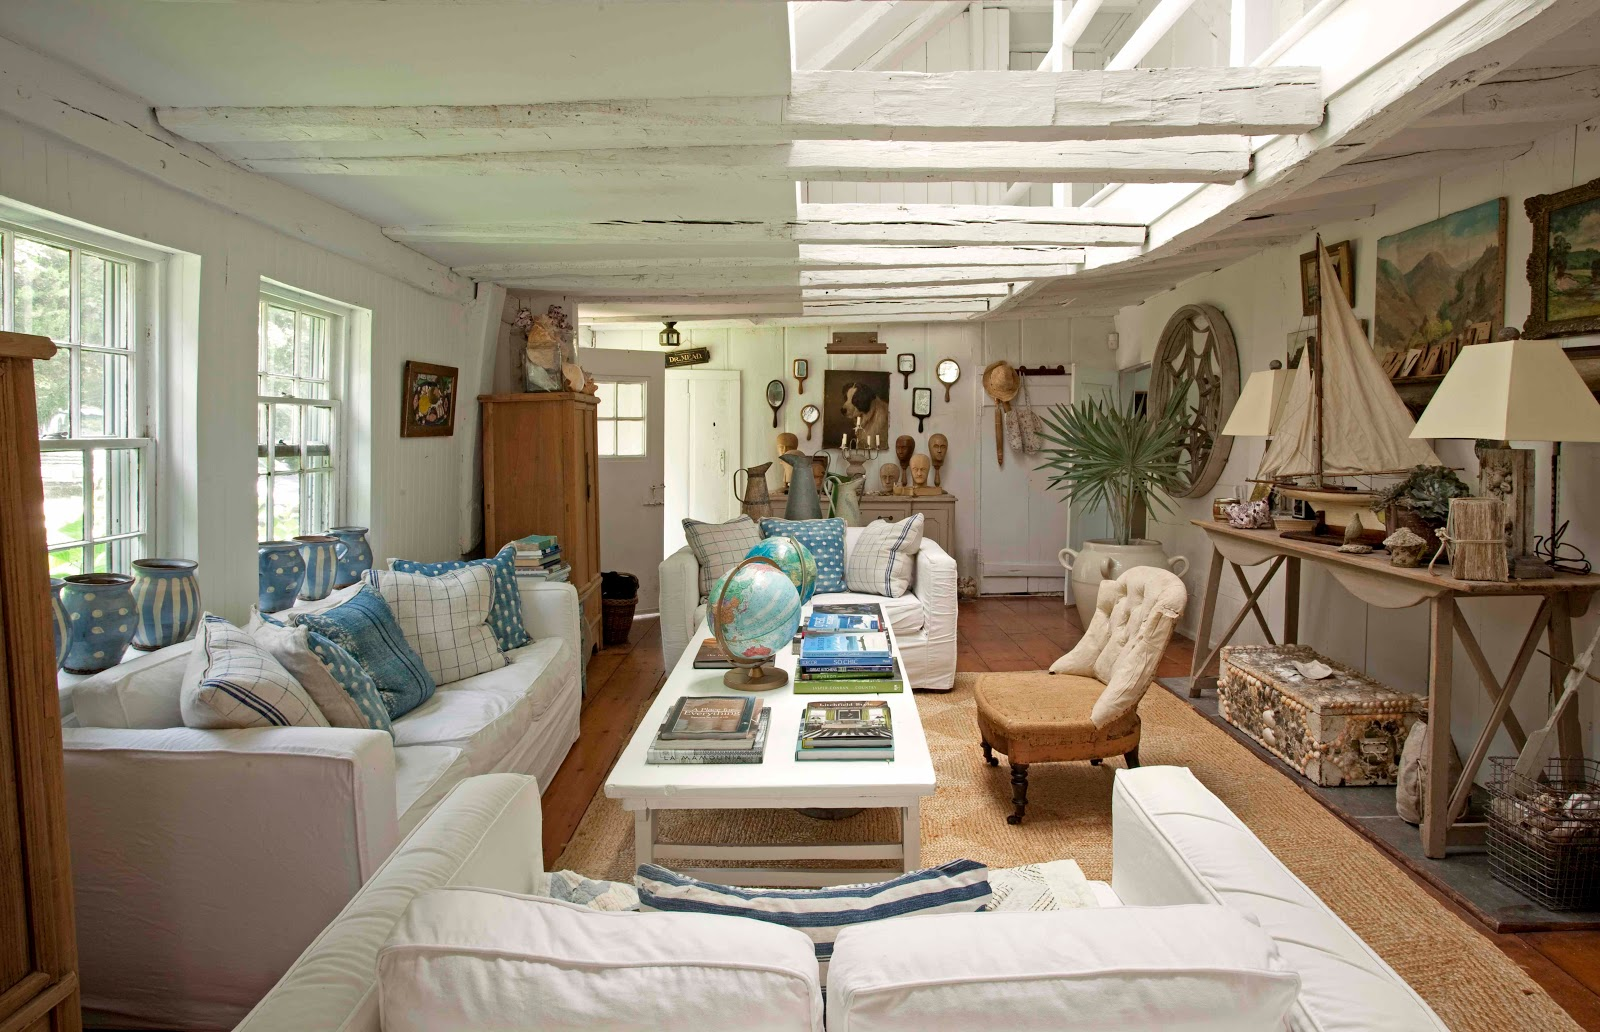 Stylebeat seaside charm rooms that inspire by the sea - Beach home design ...